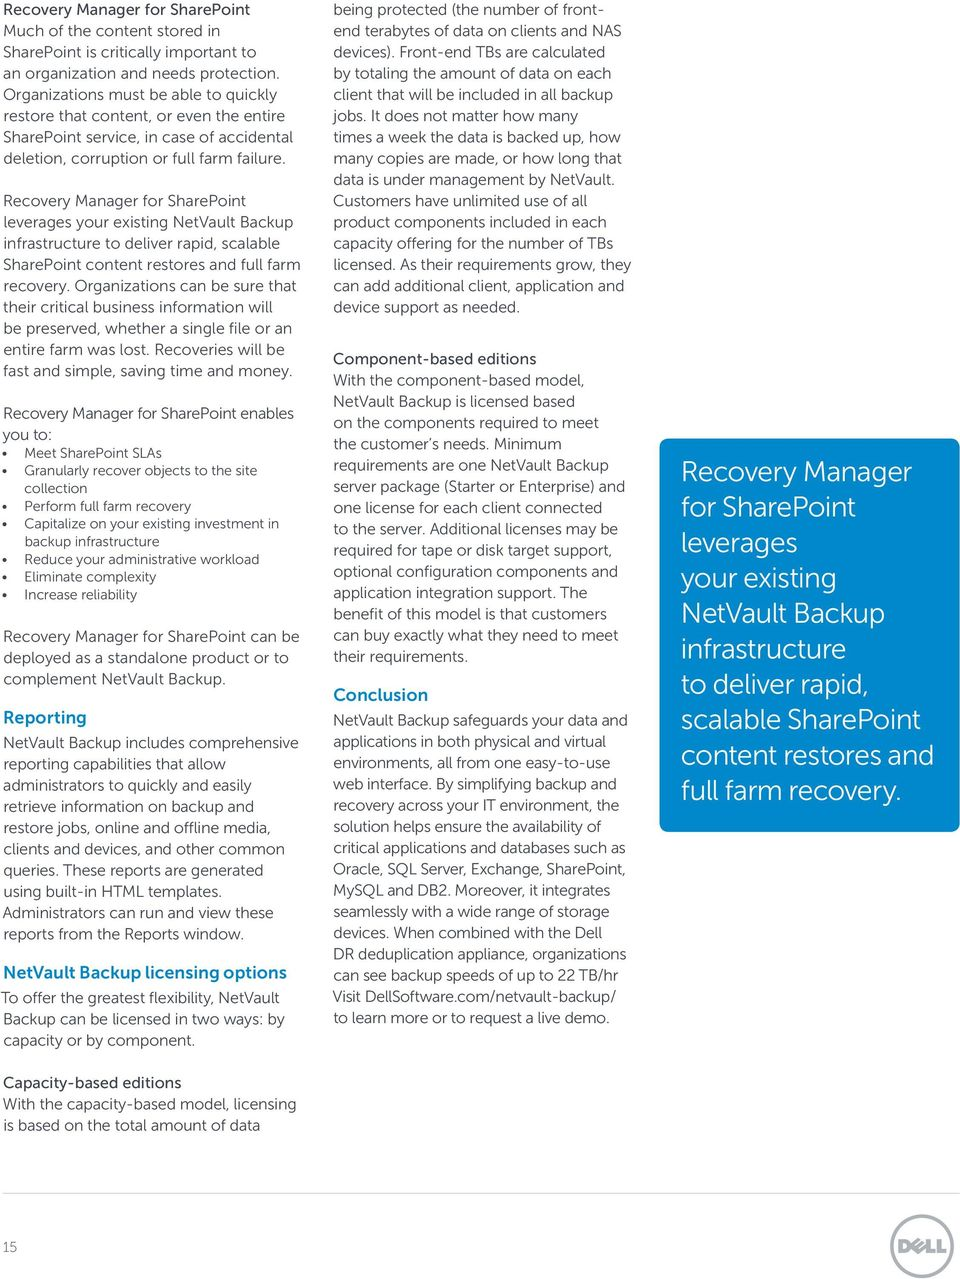 Recovery Manager for SharePoint leverages your existing NetVault Backup infrastructure to deliver rapid, scalable SharePoint content restores and full farm recovery.